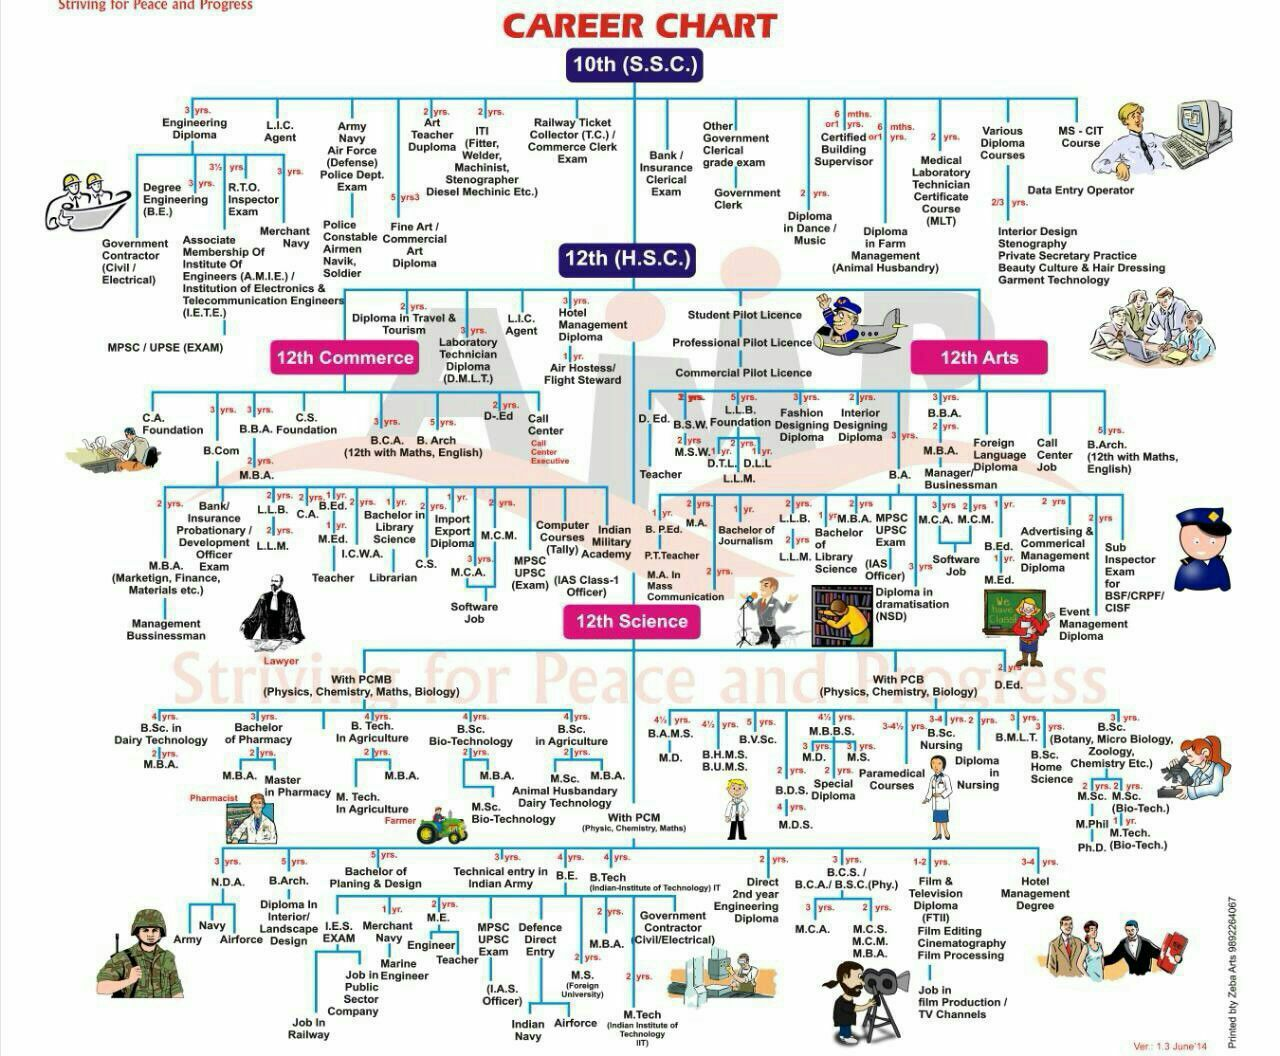 What are the best career options after 12th